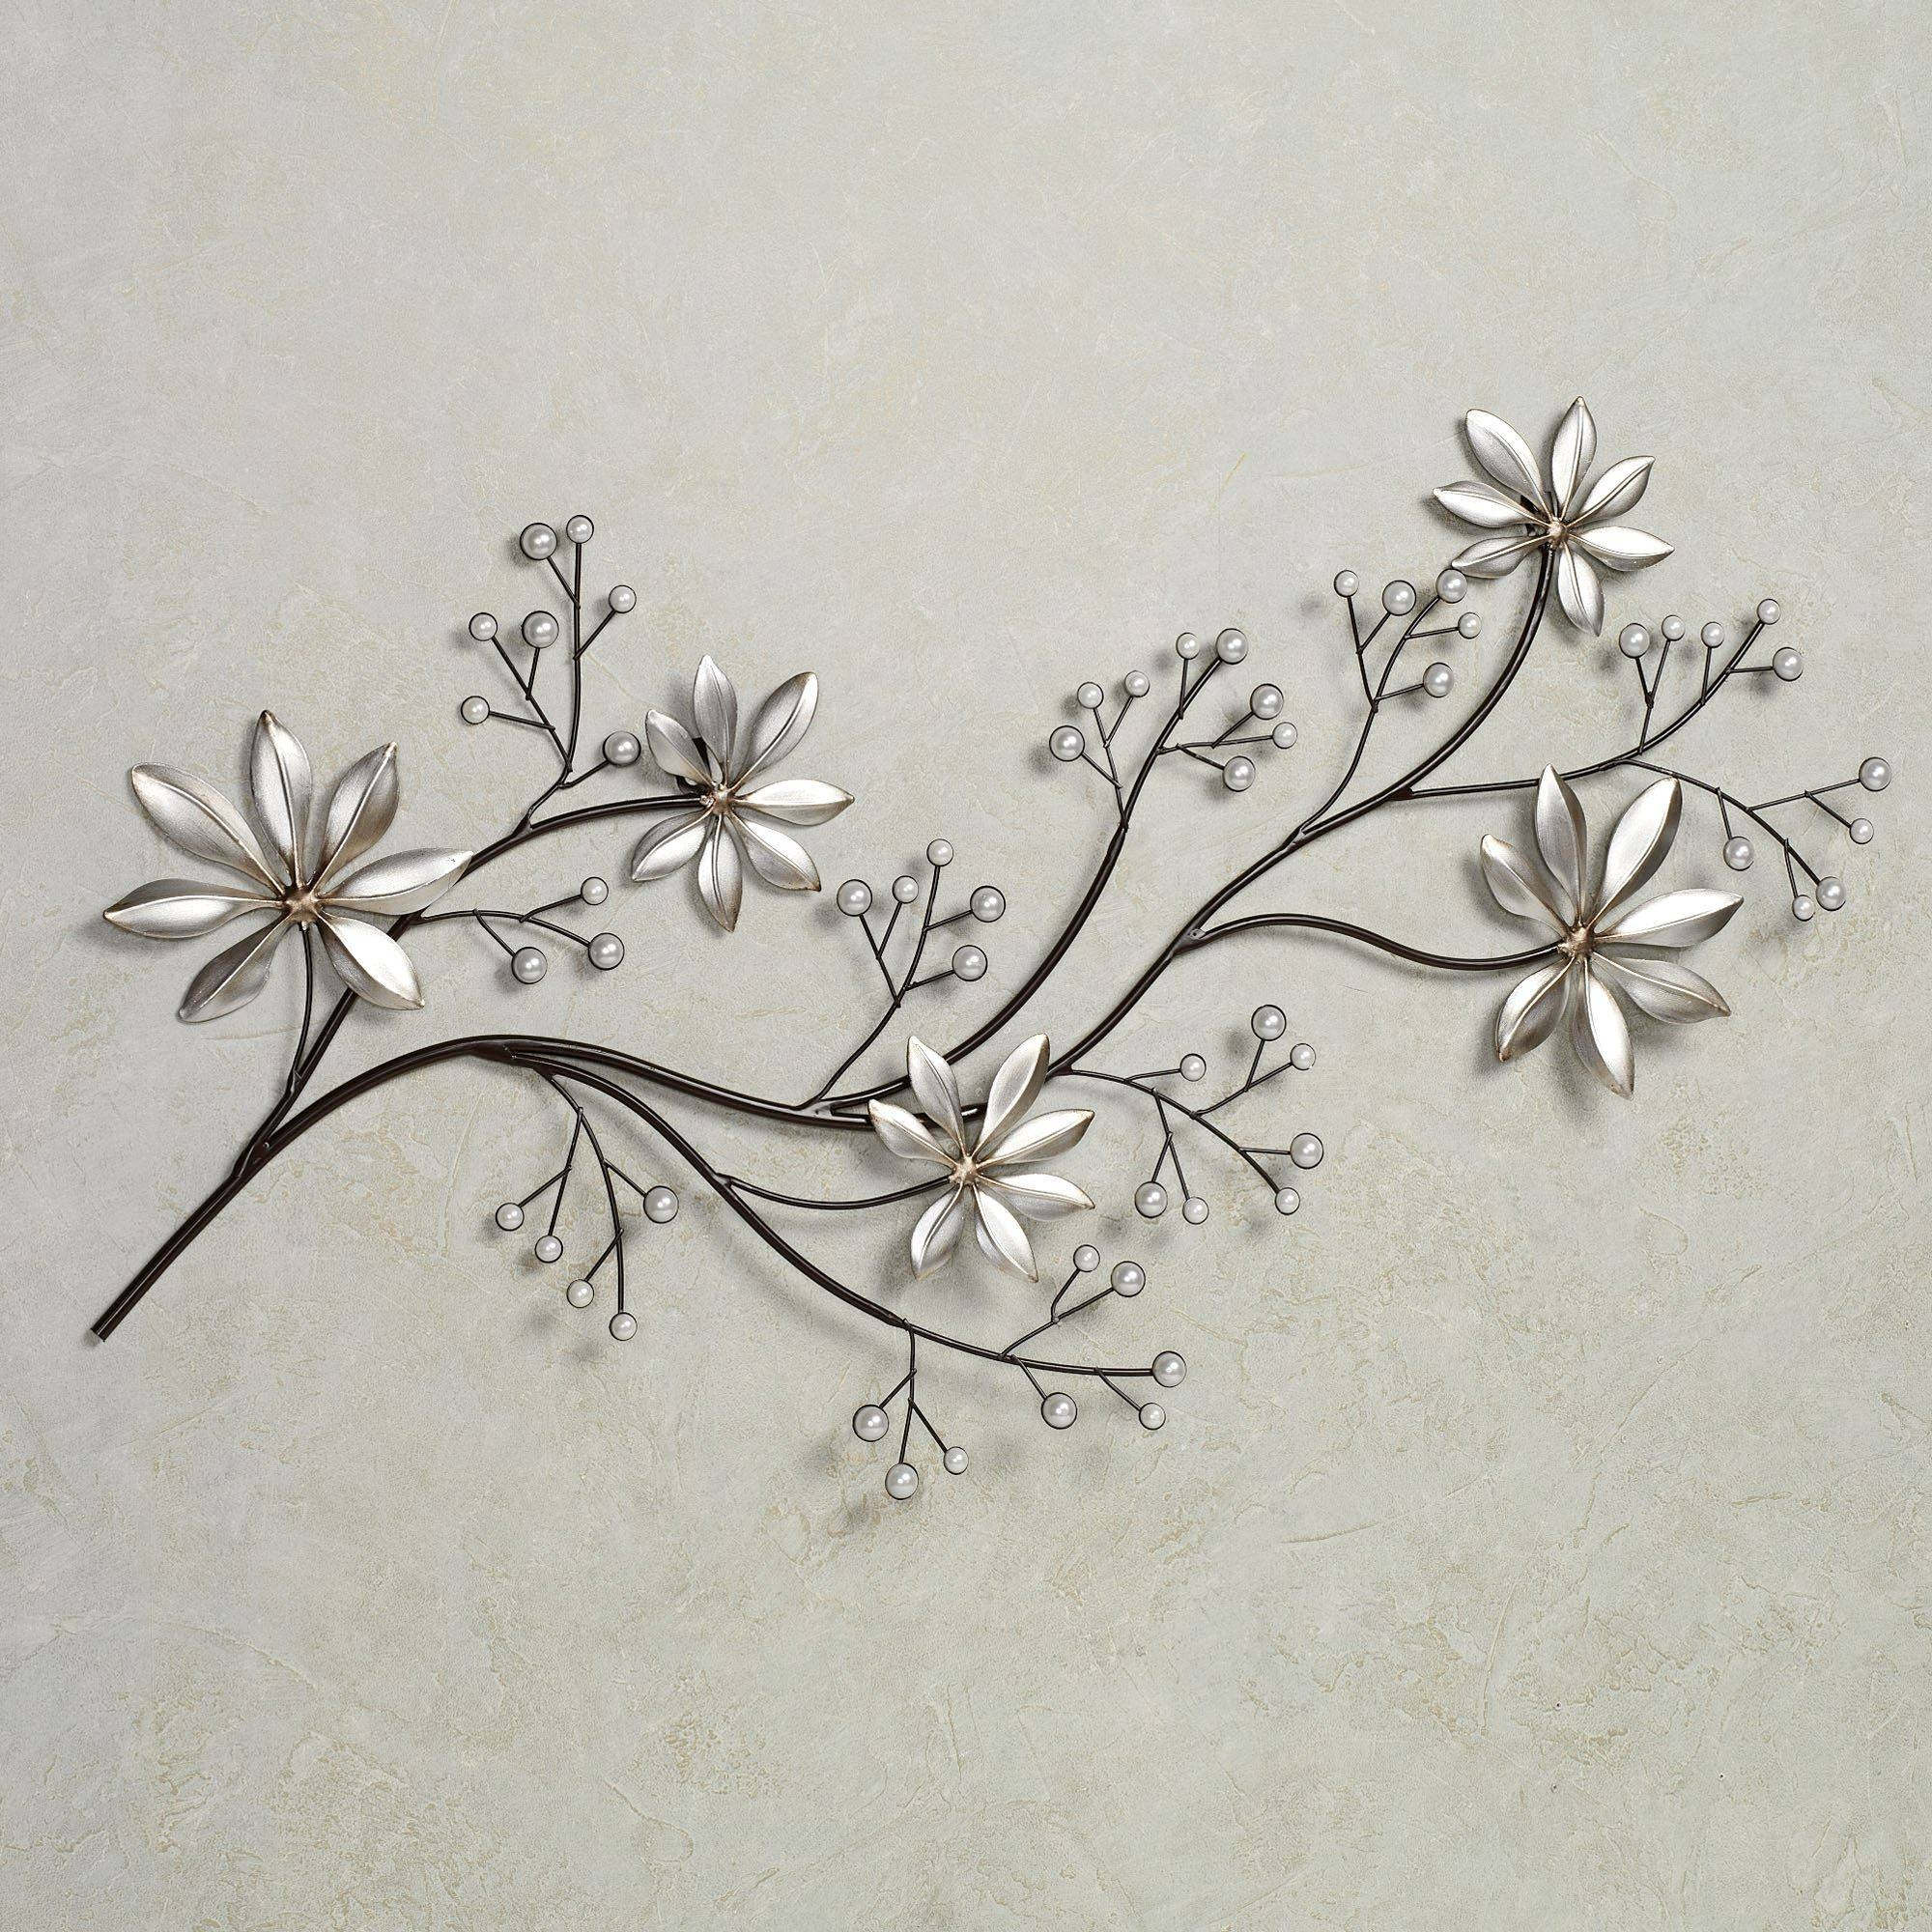 Pearl Array Floral Metal Wall Art Pertaining To Newest Branches Metal Wall Art (View 5 of 20)